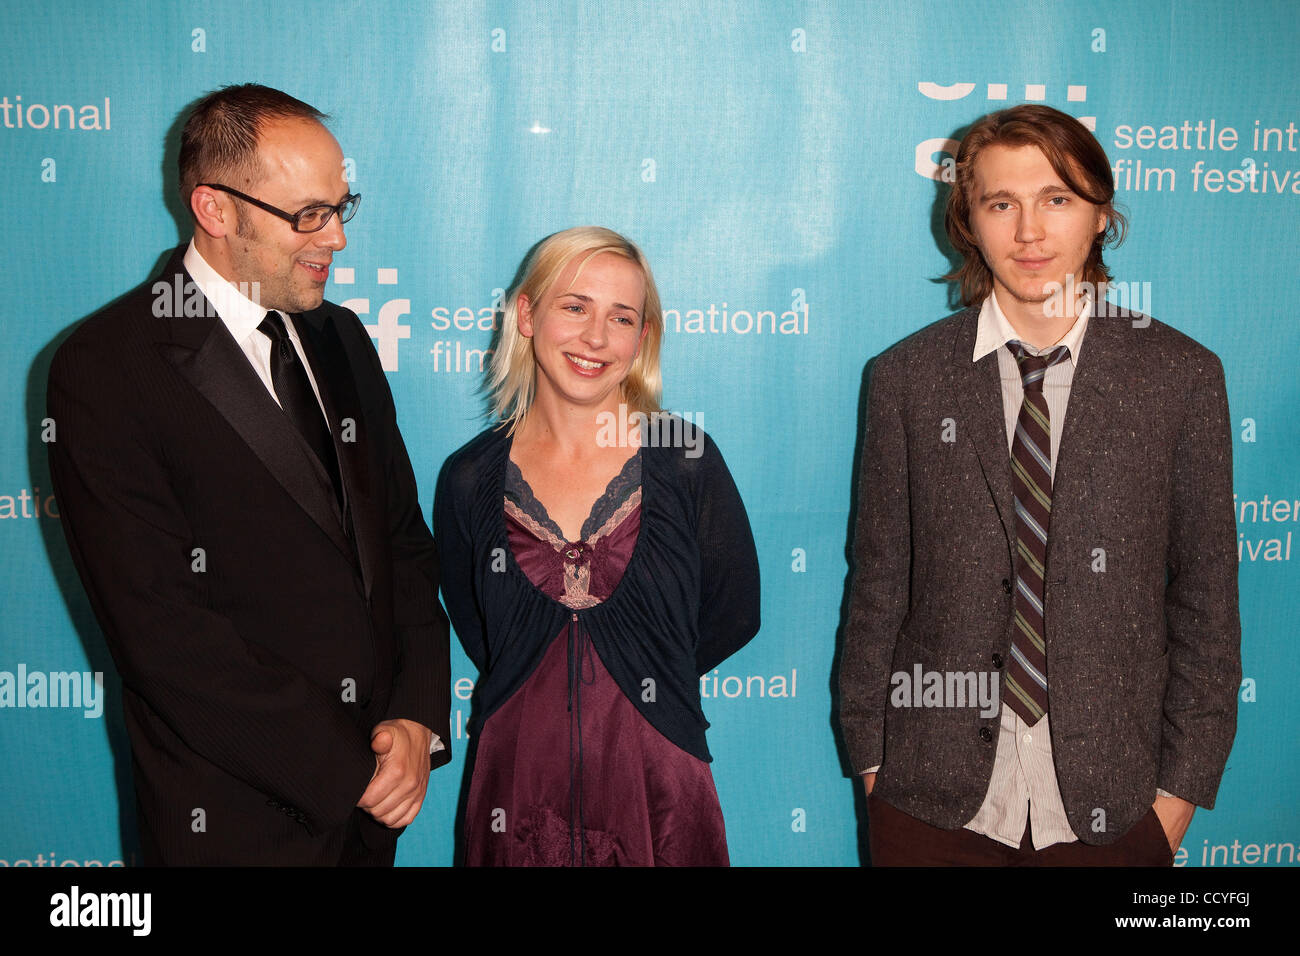 At Siff Red Stock Photos & At Siff Red Stock Images - Alamy